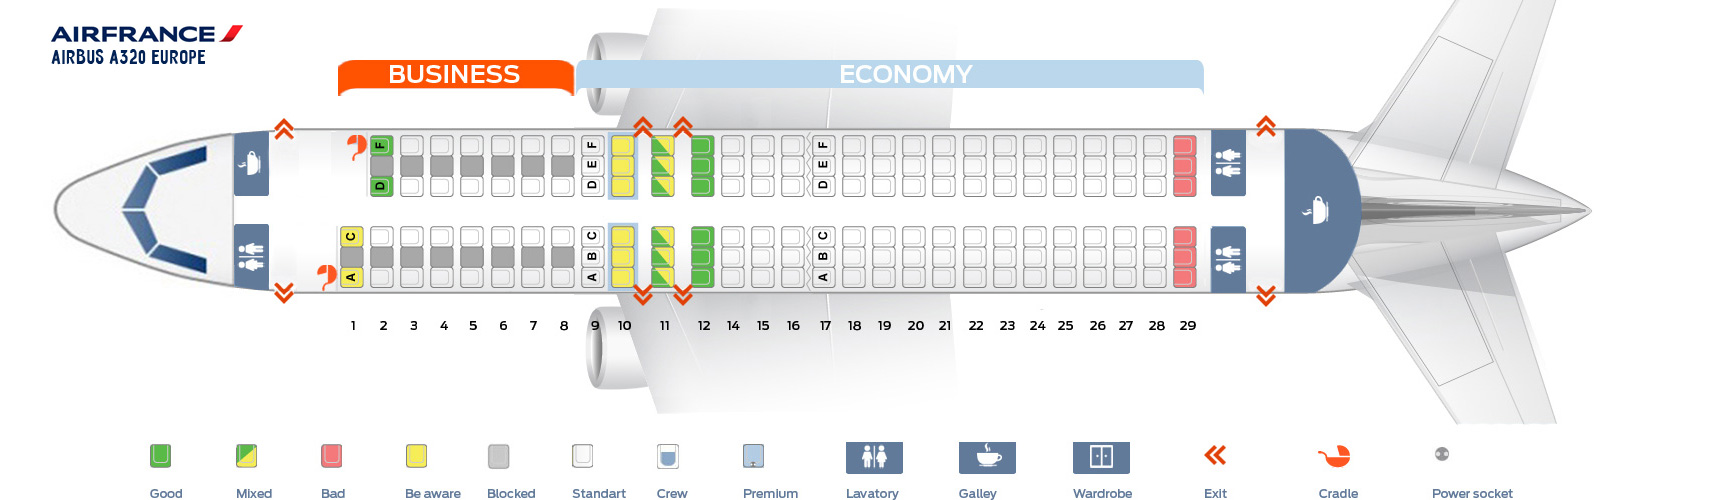 Seat Map Airbus A320 Europe Air France